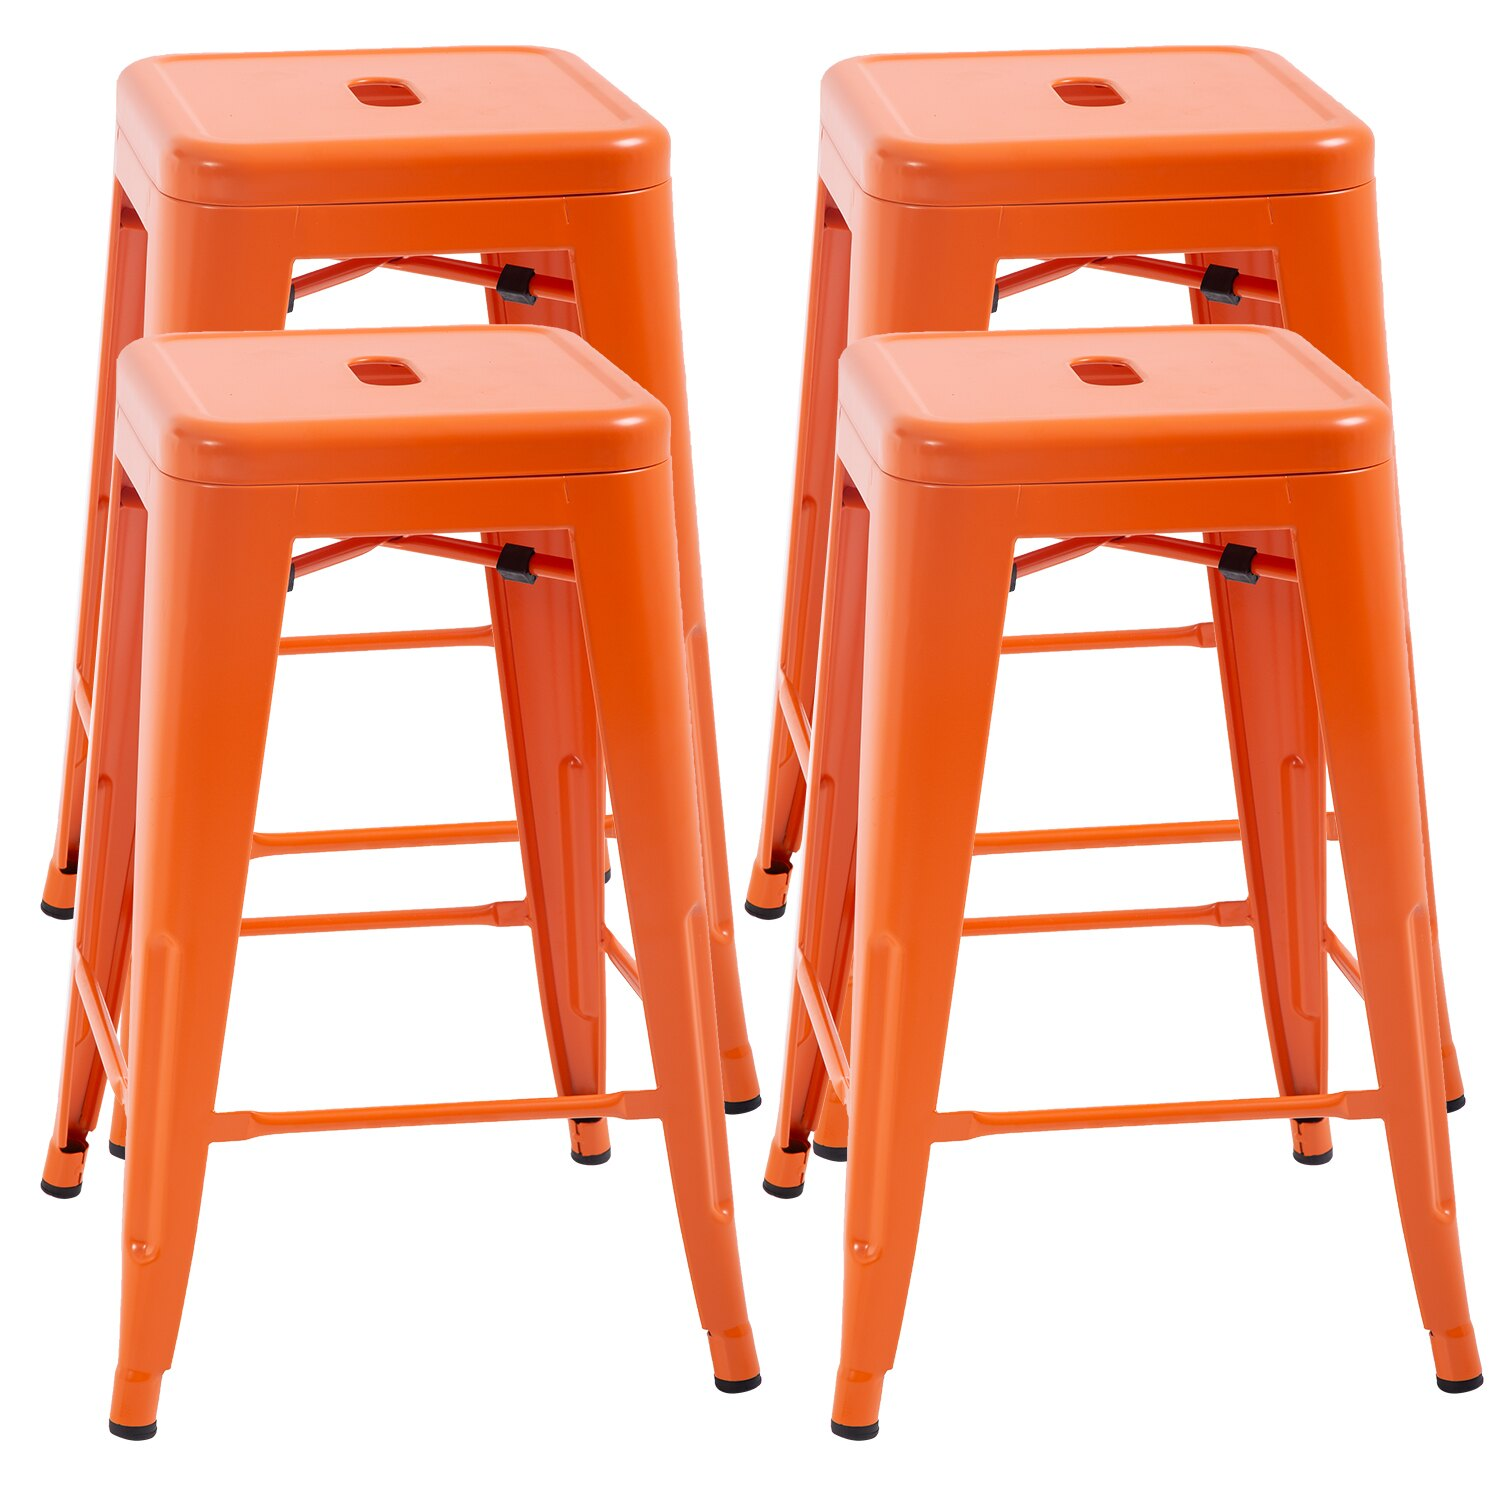 Counter Height Bar Stools Set Of 4 Metal Bar Stools Industrial Metal Stool Patio Furniture 24 Inches Kitchen Counter Stool Indoor Outdoor Stool Moden